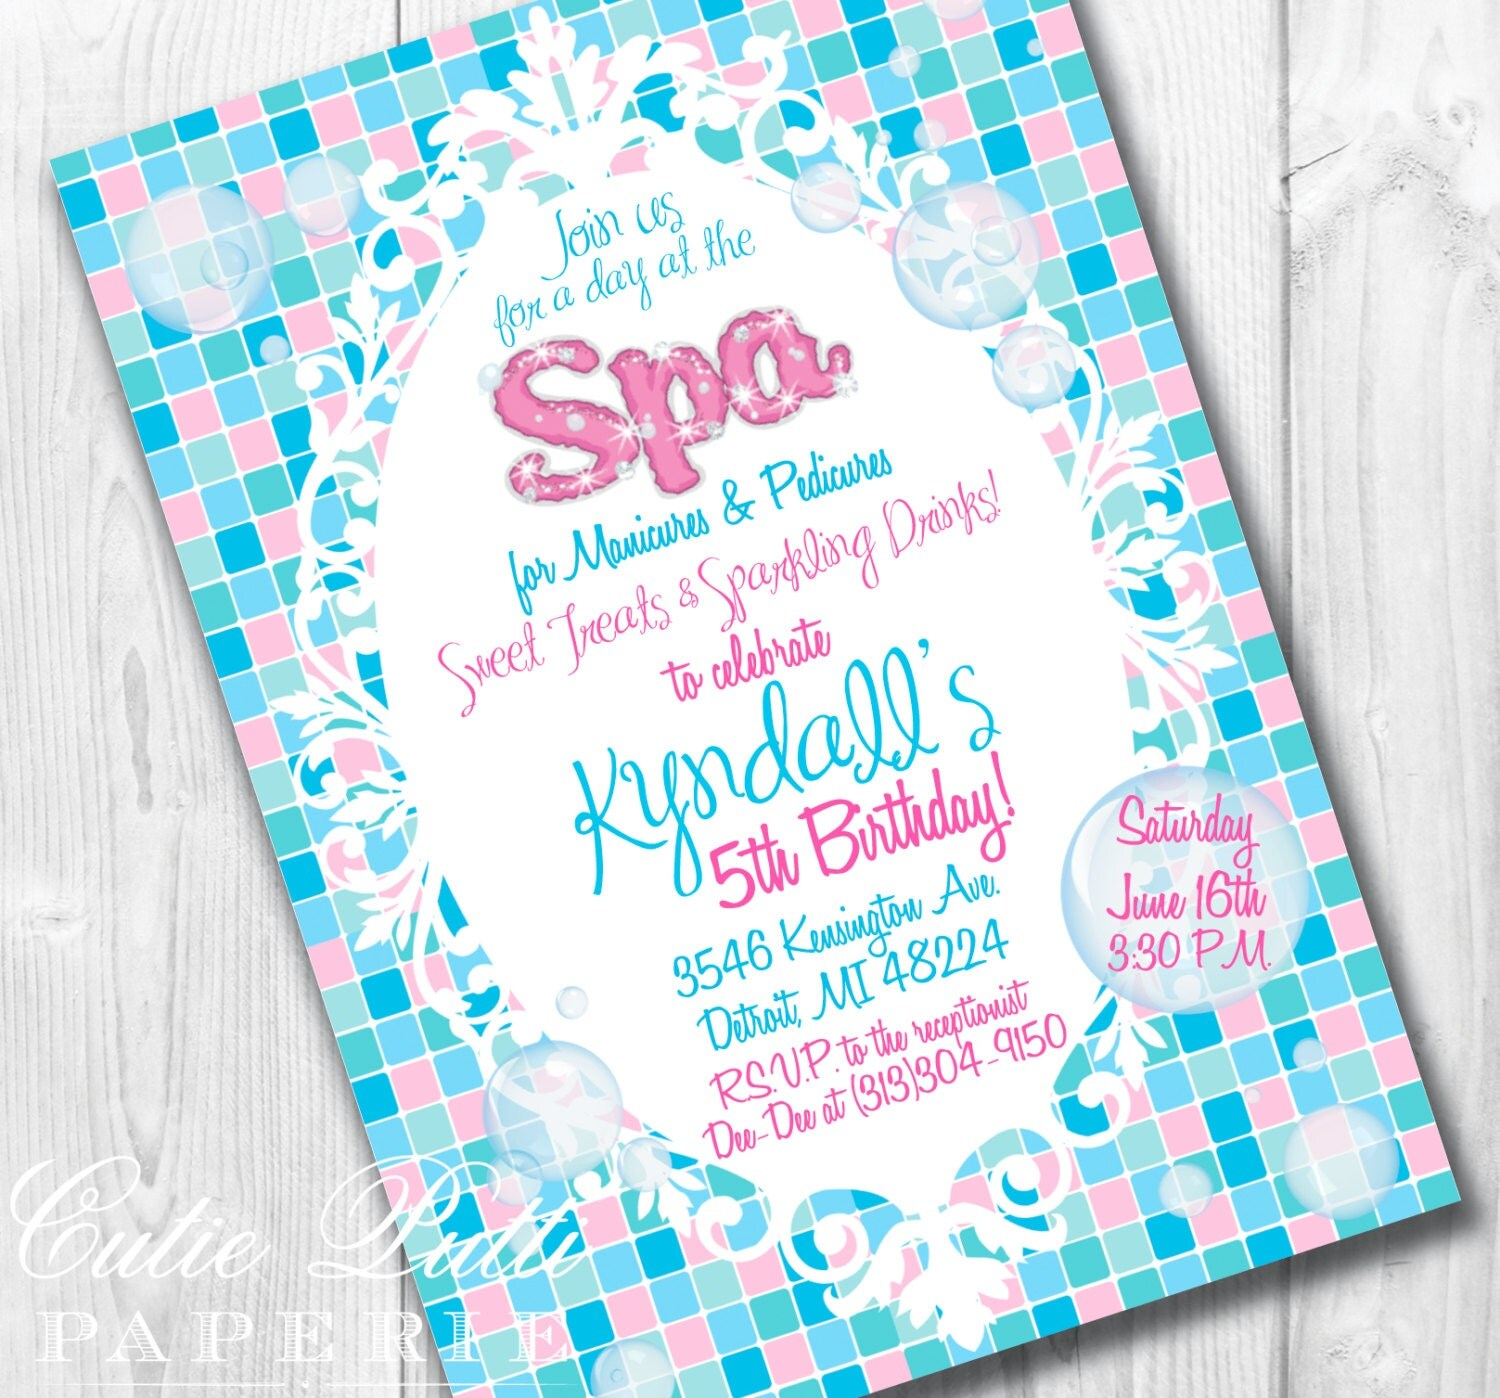 Pamper Party Invitation was luxury invitations template